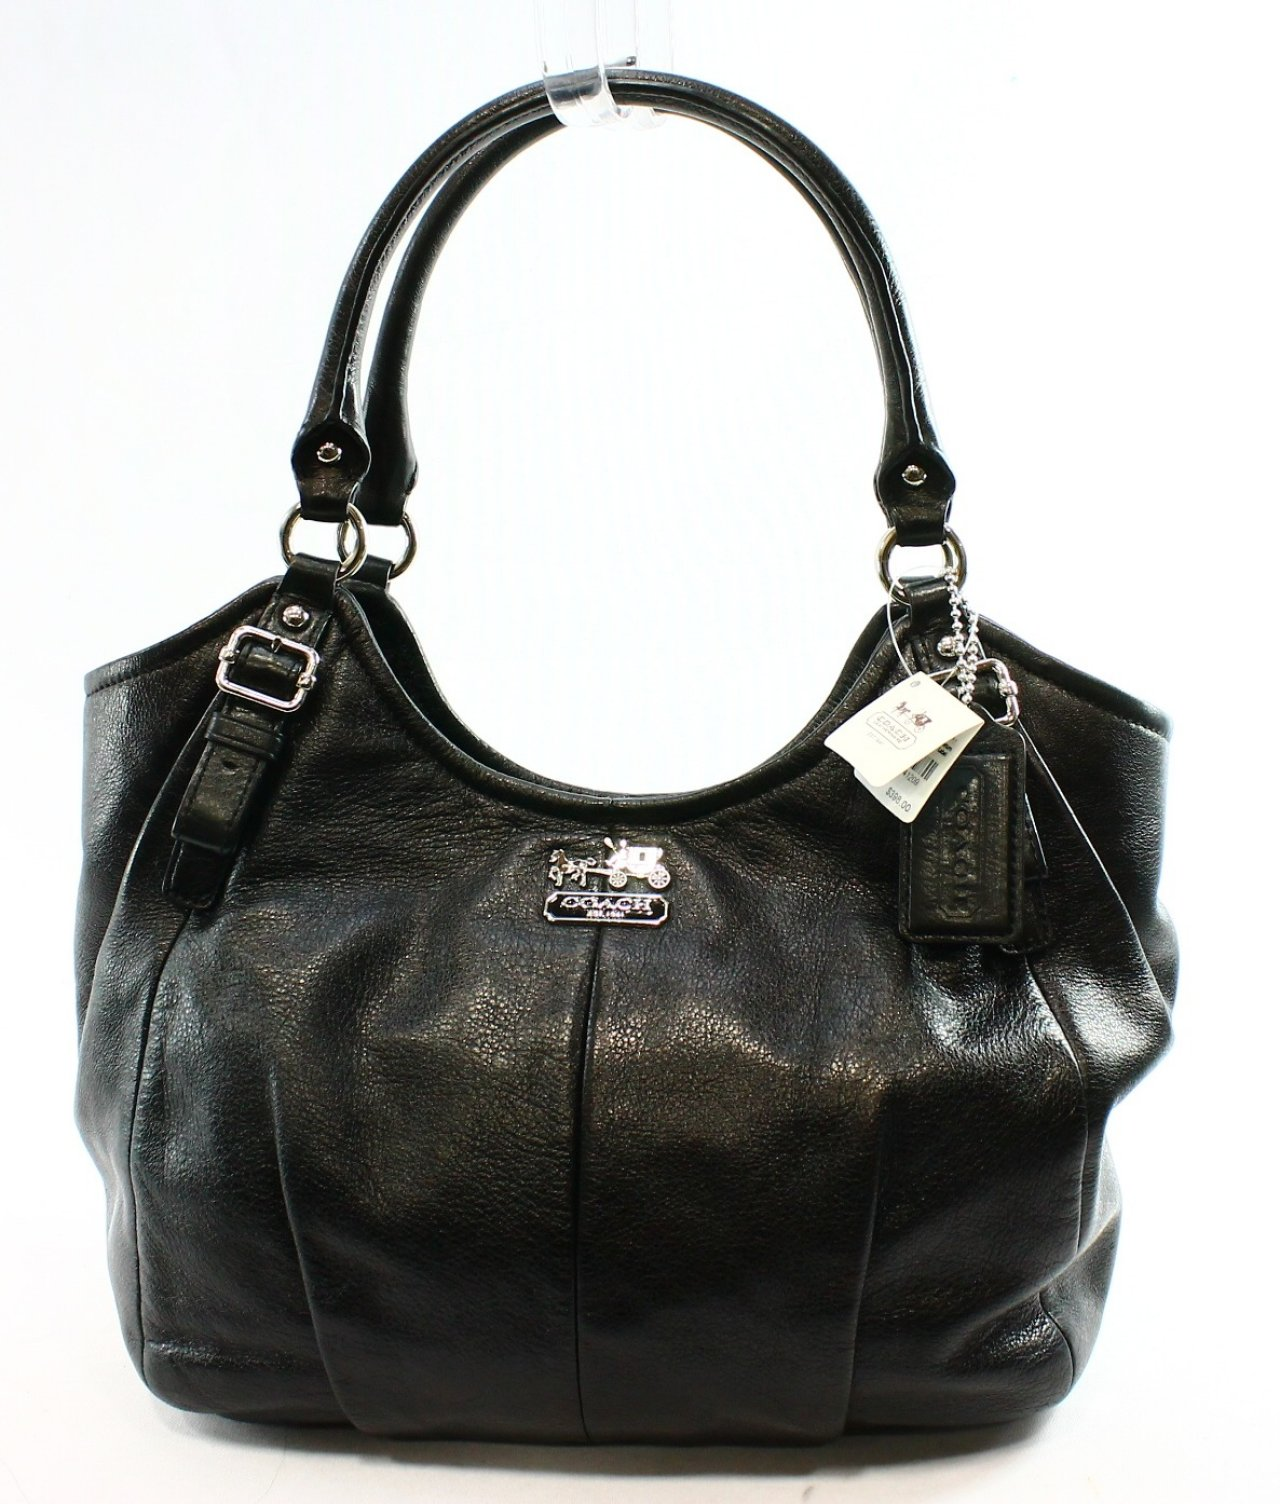 Madison Leather Abigail Shoulder Bag 398.00 103